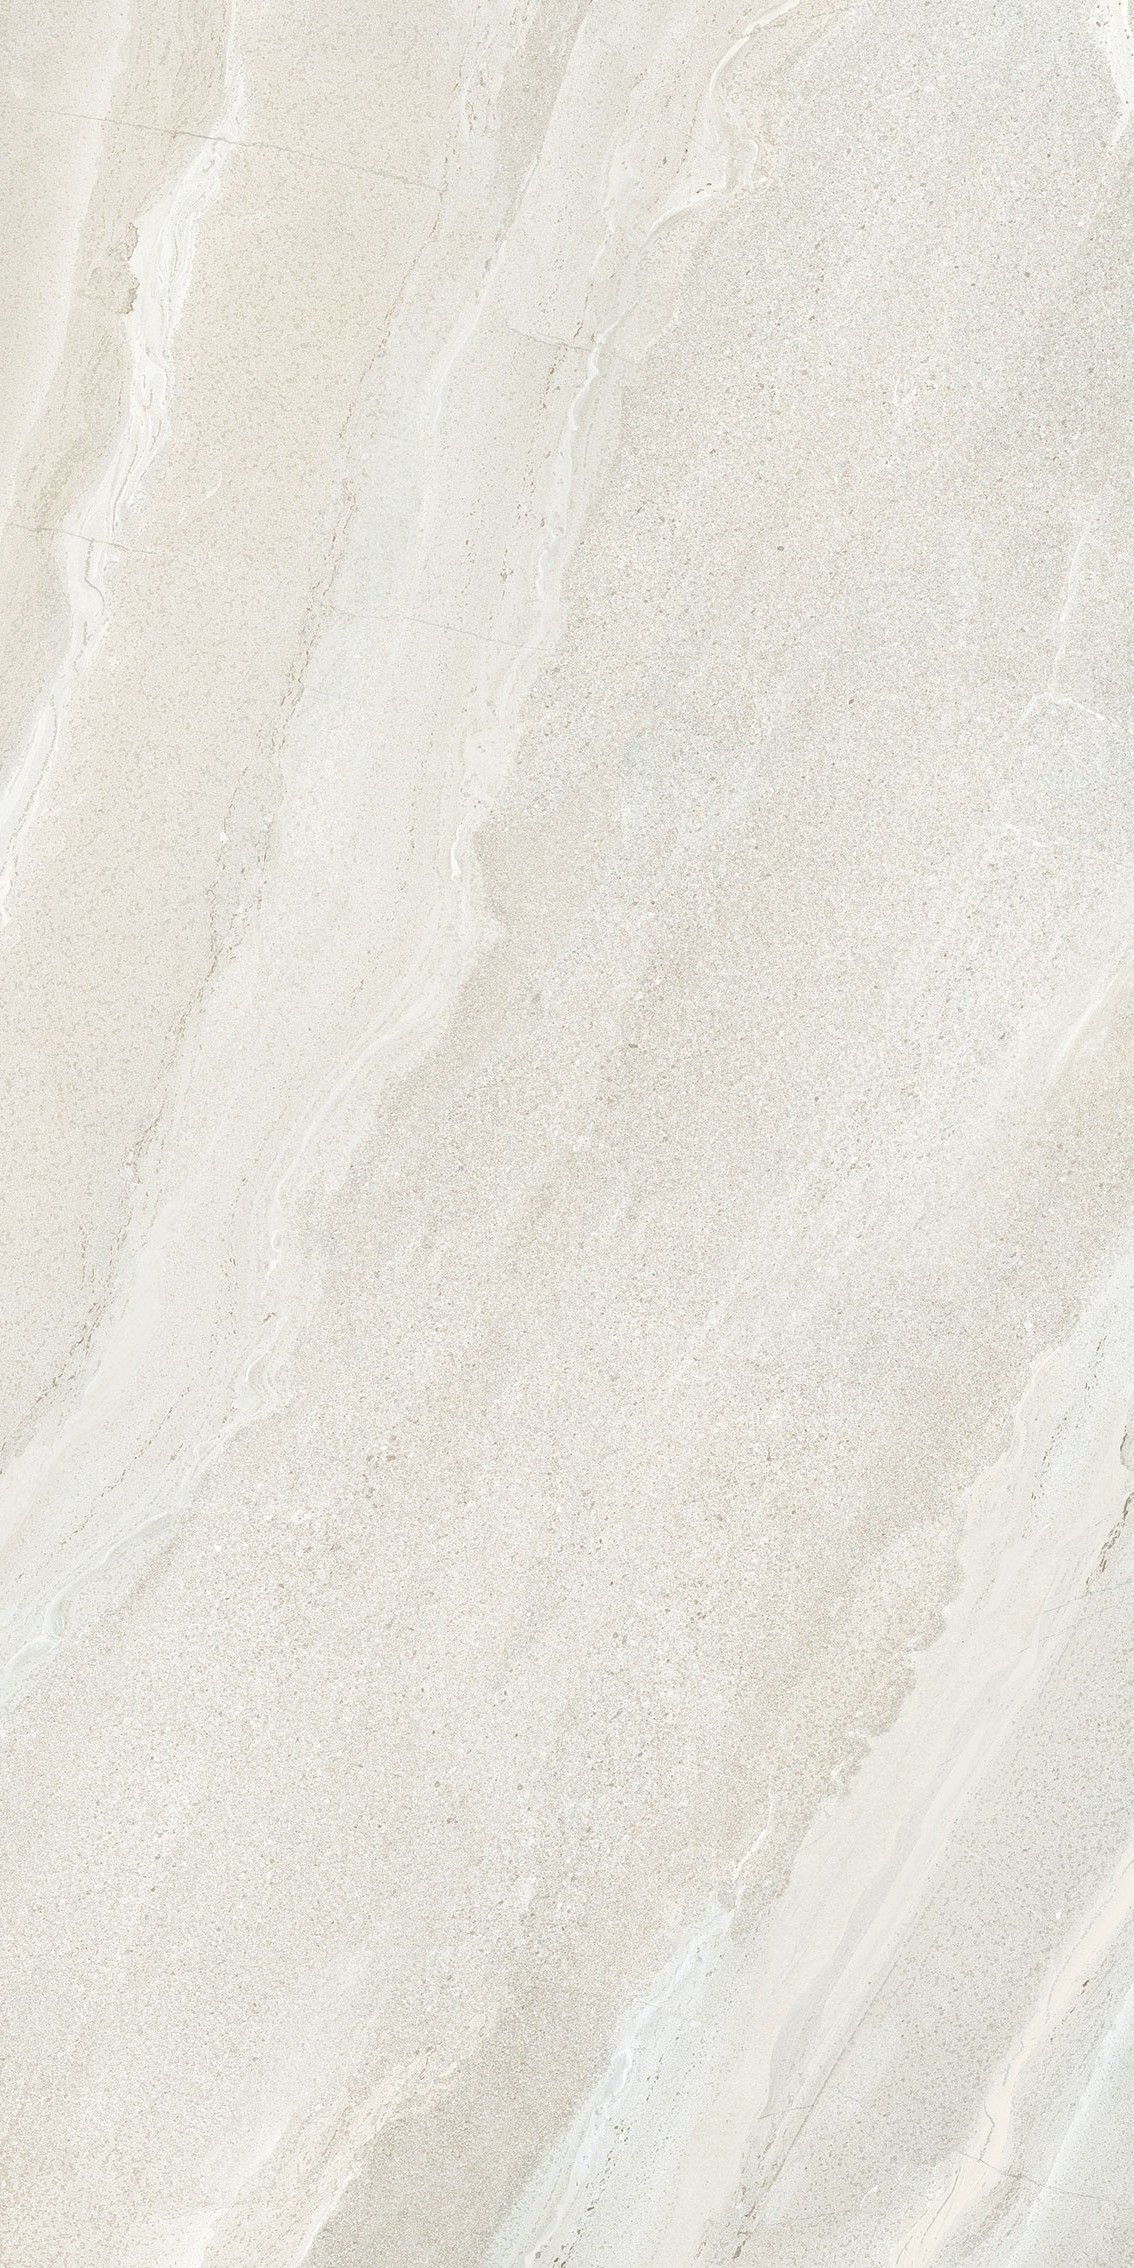 Magnum Oversize By Florim Porcelain Stoneware In Extra Large Sizes Interior Textures Tiles Texture Textured Wallpaper